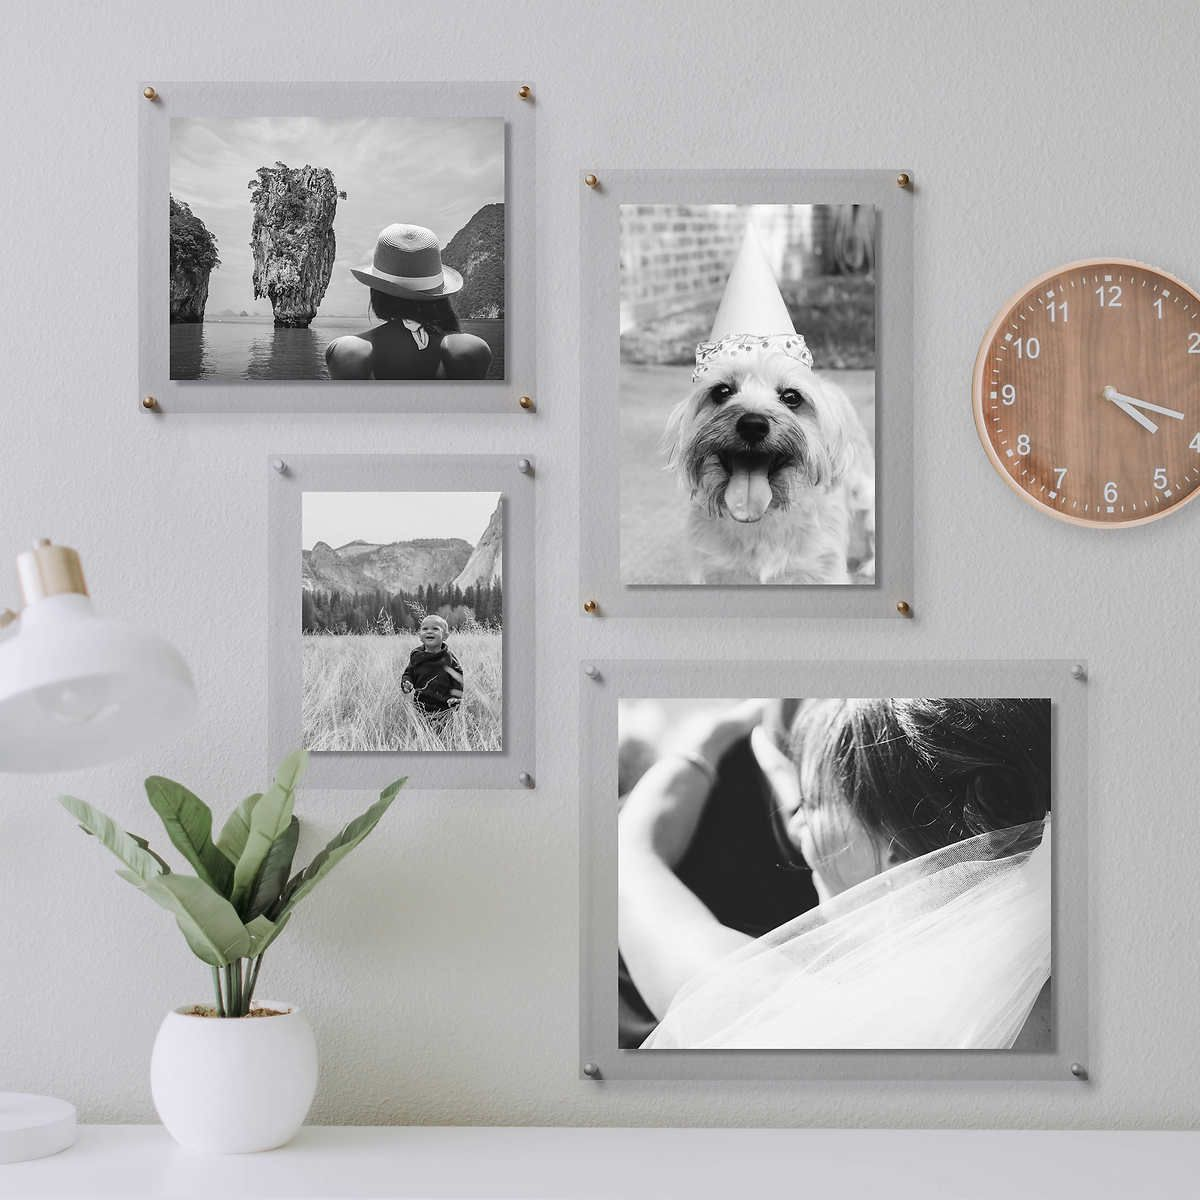 Clear Floating Acrylic Frames 2 Pack In 2020 Floating Acrylic Frame Gallery Wall Frames Acrylic Frames